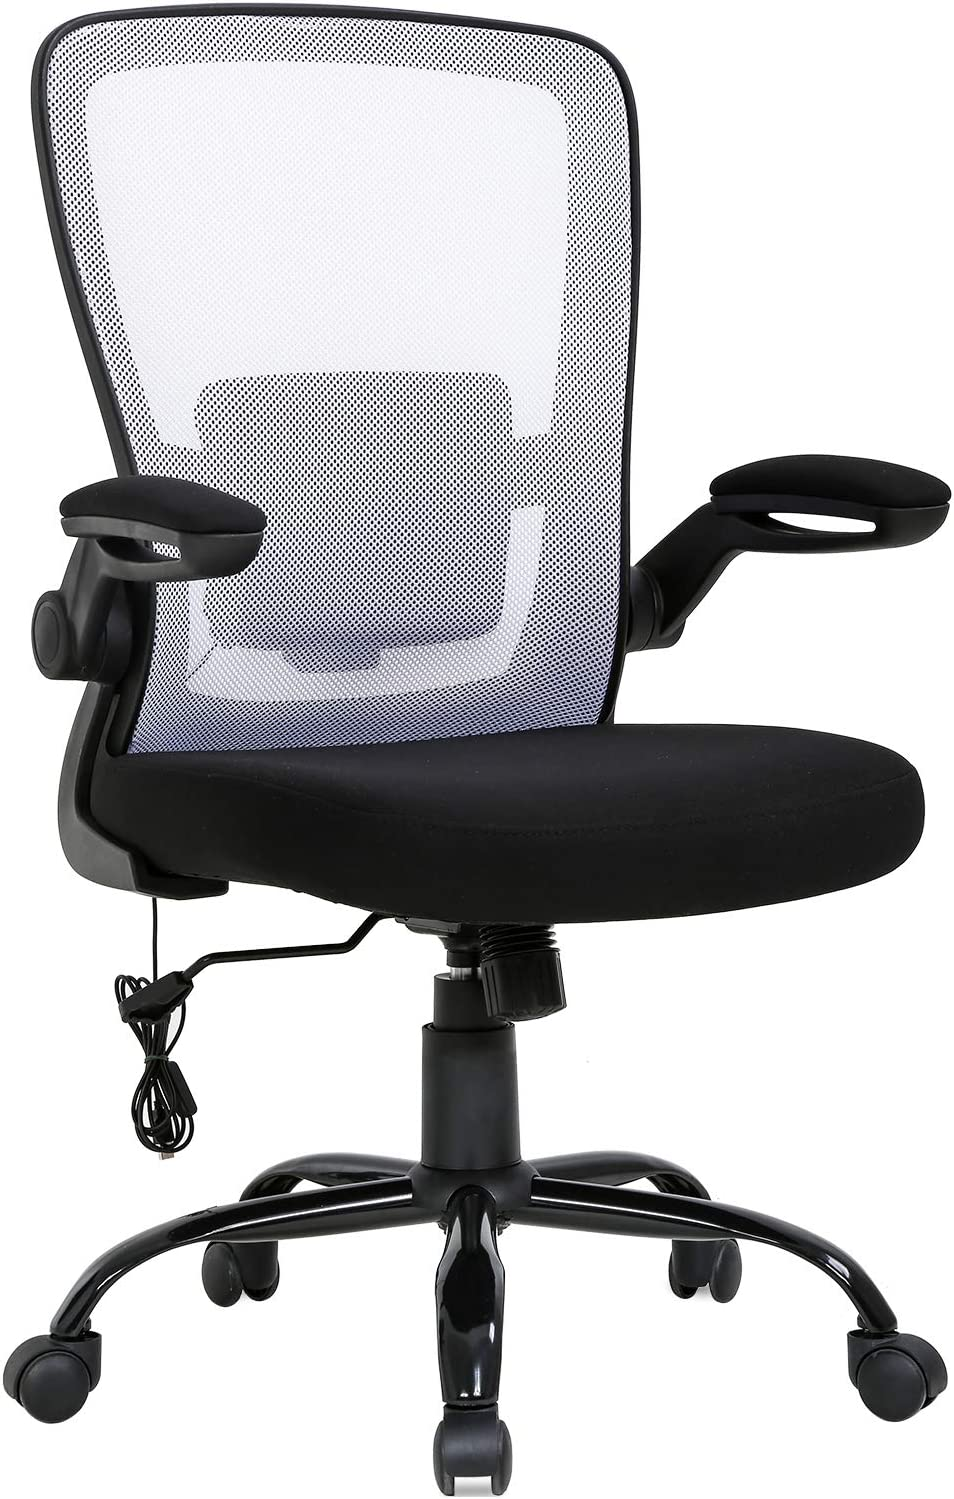 Home Office Chair Ergonomic Desk Chair Massage Computer Chair Swivel Rolling Executive Task Chair with Lumbar Support Flip-up Arms Mid Back Height Adjustable Mesh Chair for Adults(White)